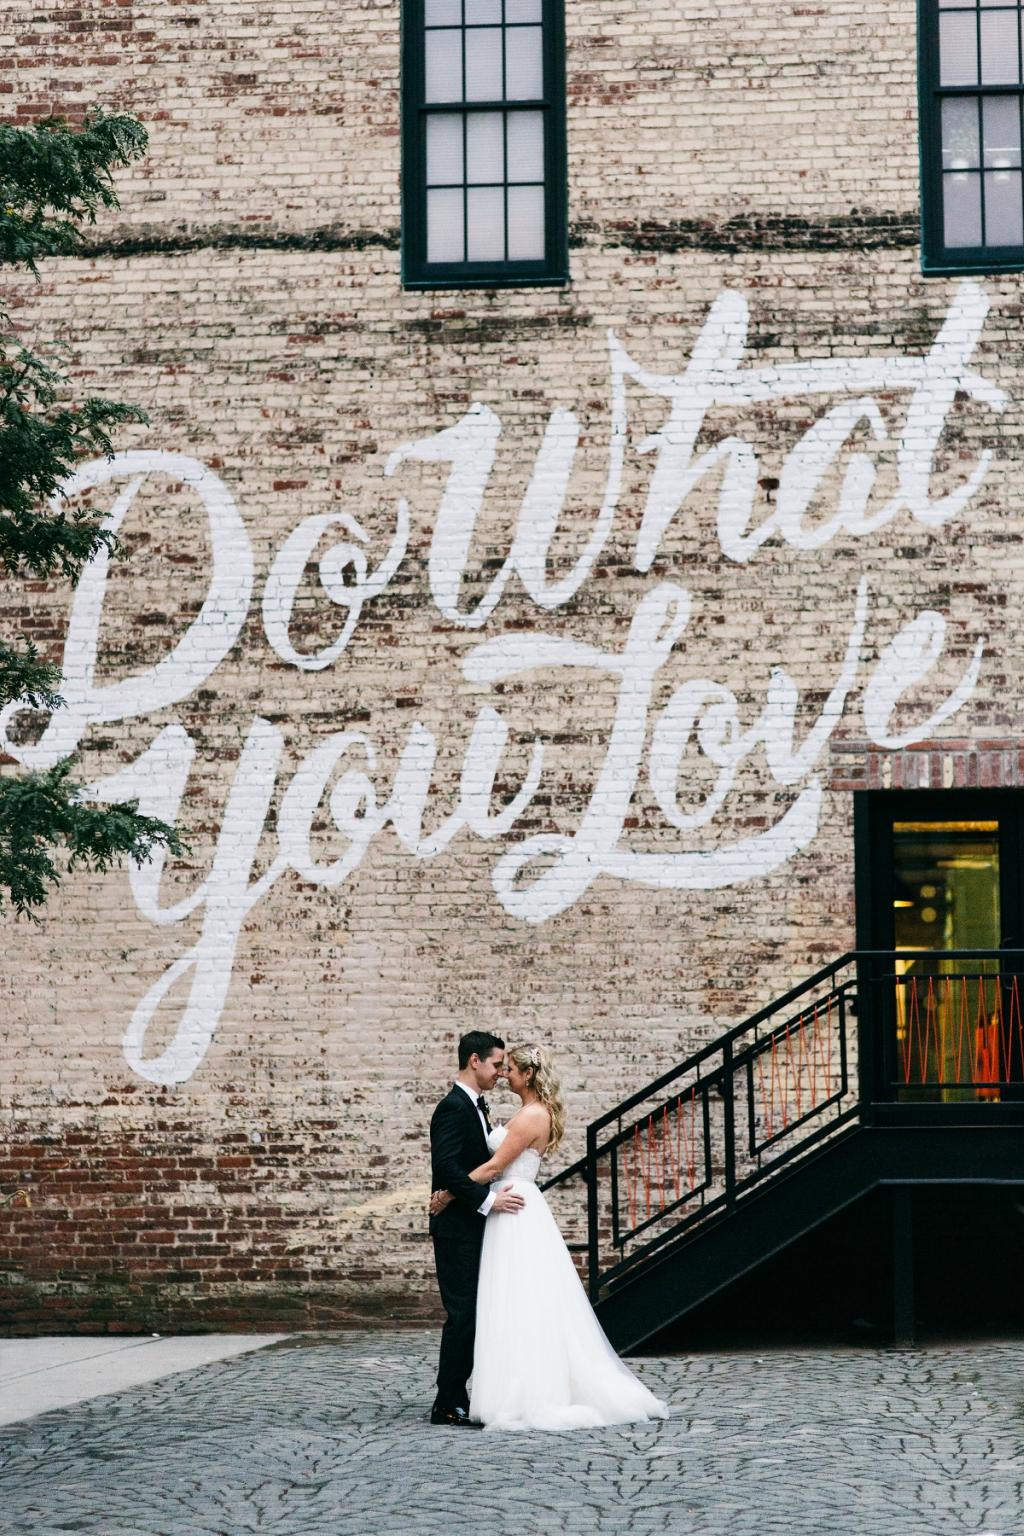 Philly In Love | Best of Real Weddings 2017 Philadelphia Weddings Wedding Inspiration 2018 Wedding